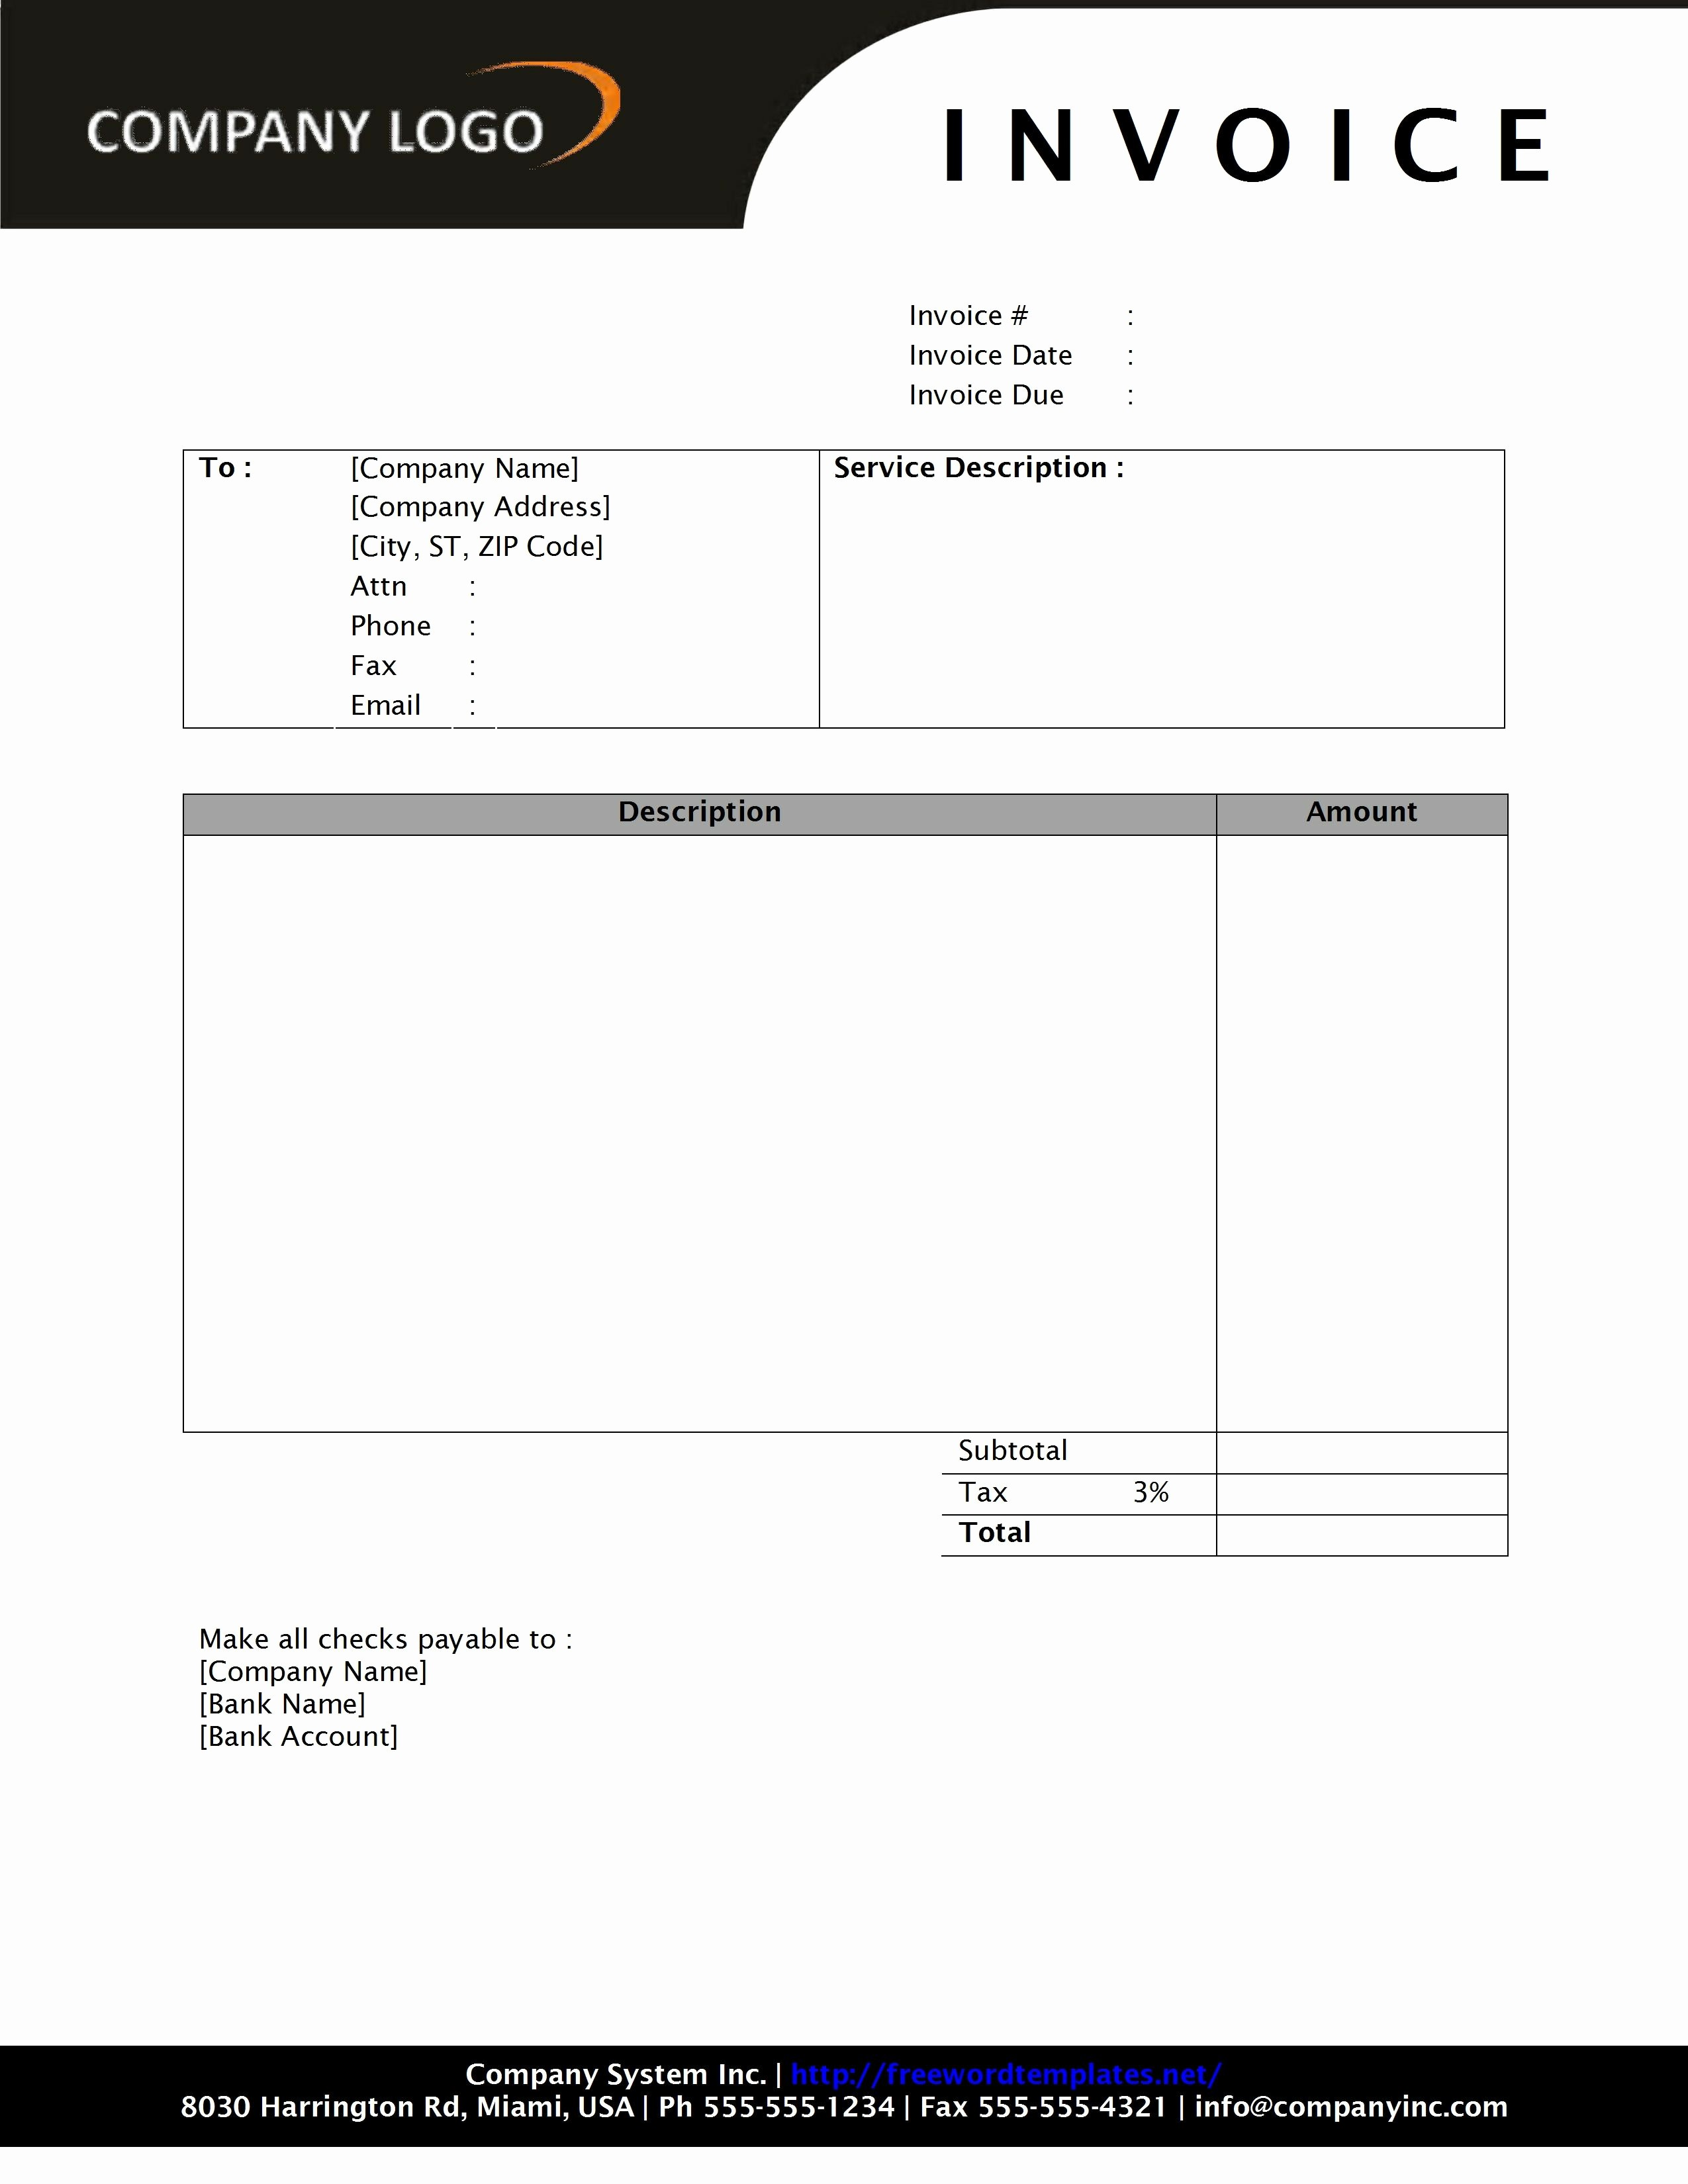 Free Printable Invoice Templates Word Beautiful Invoice Template Word 2010